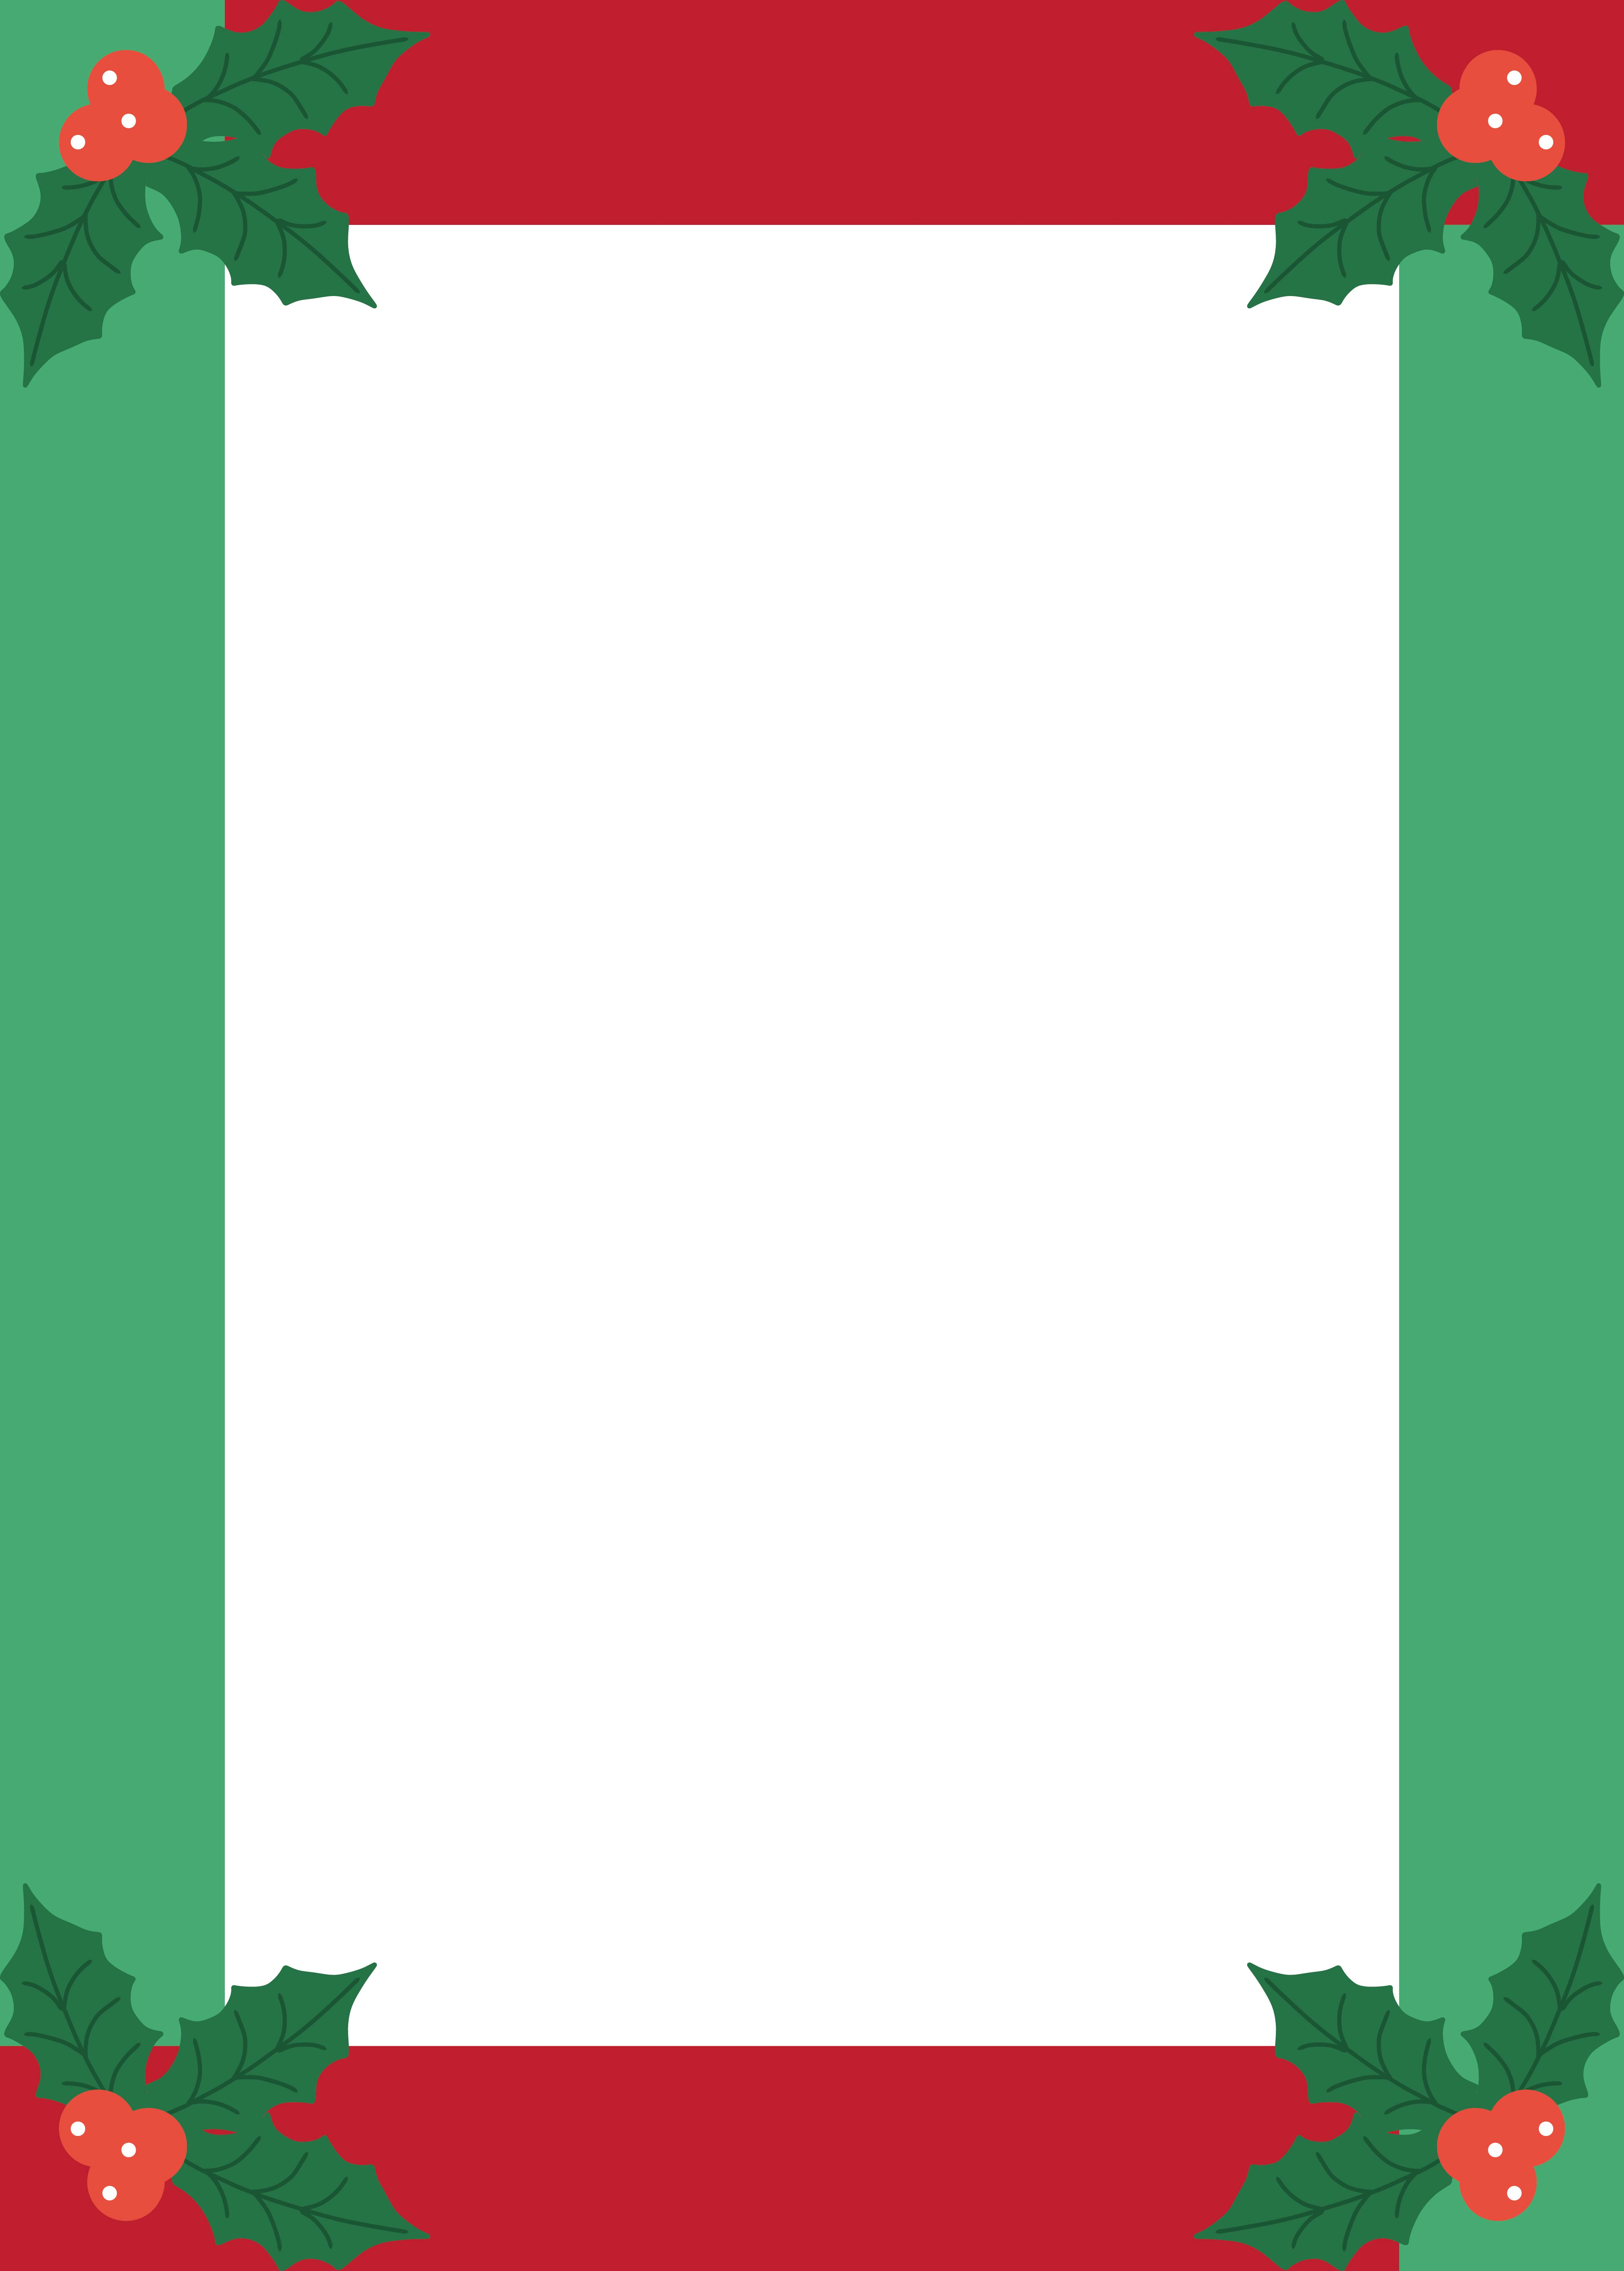 free holiday stationery templates - 5 best images of free printable christmas border templates